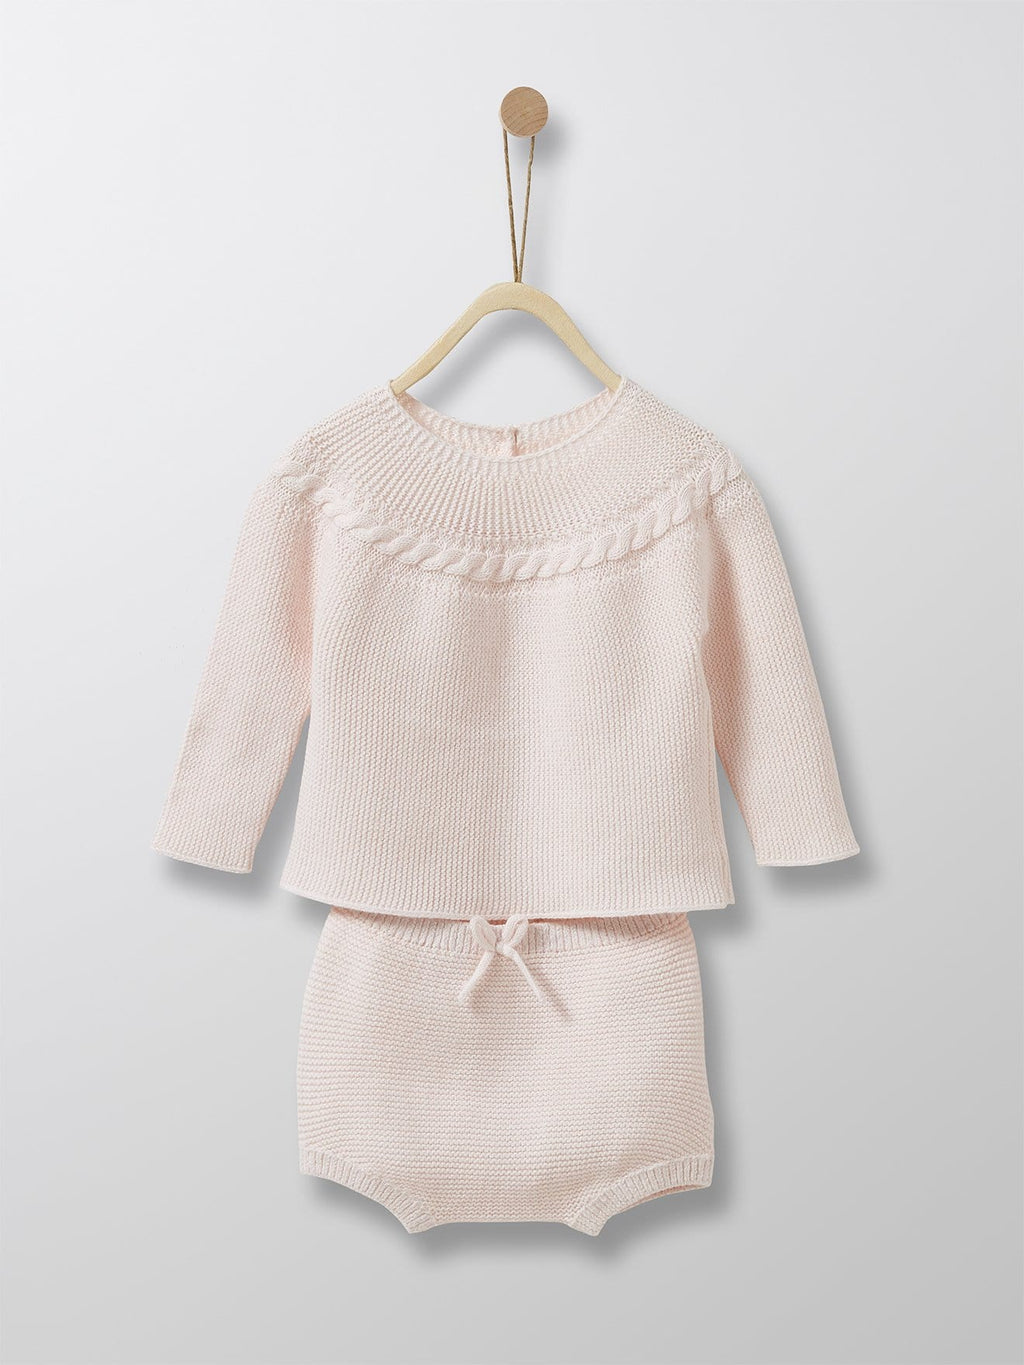 Cyrillus Paris | Sweater & Briefs Outfit for Newborn | 100% Organic Cotton | 1M, 3M